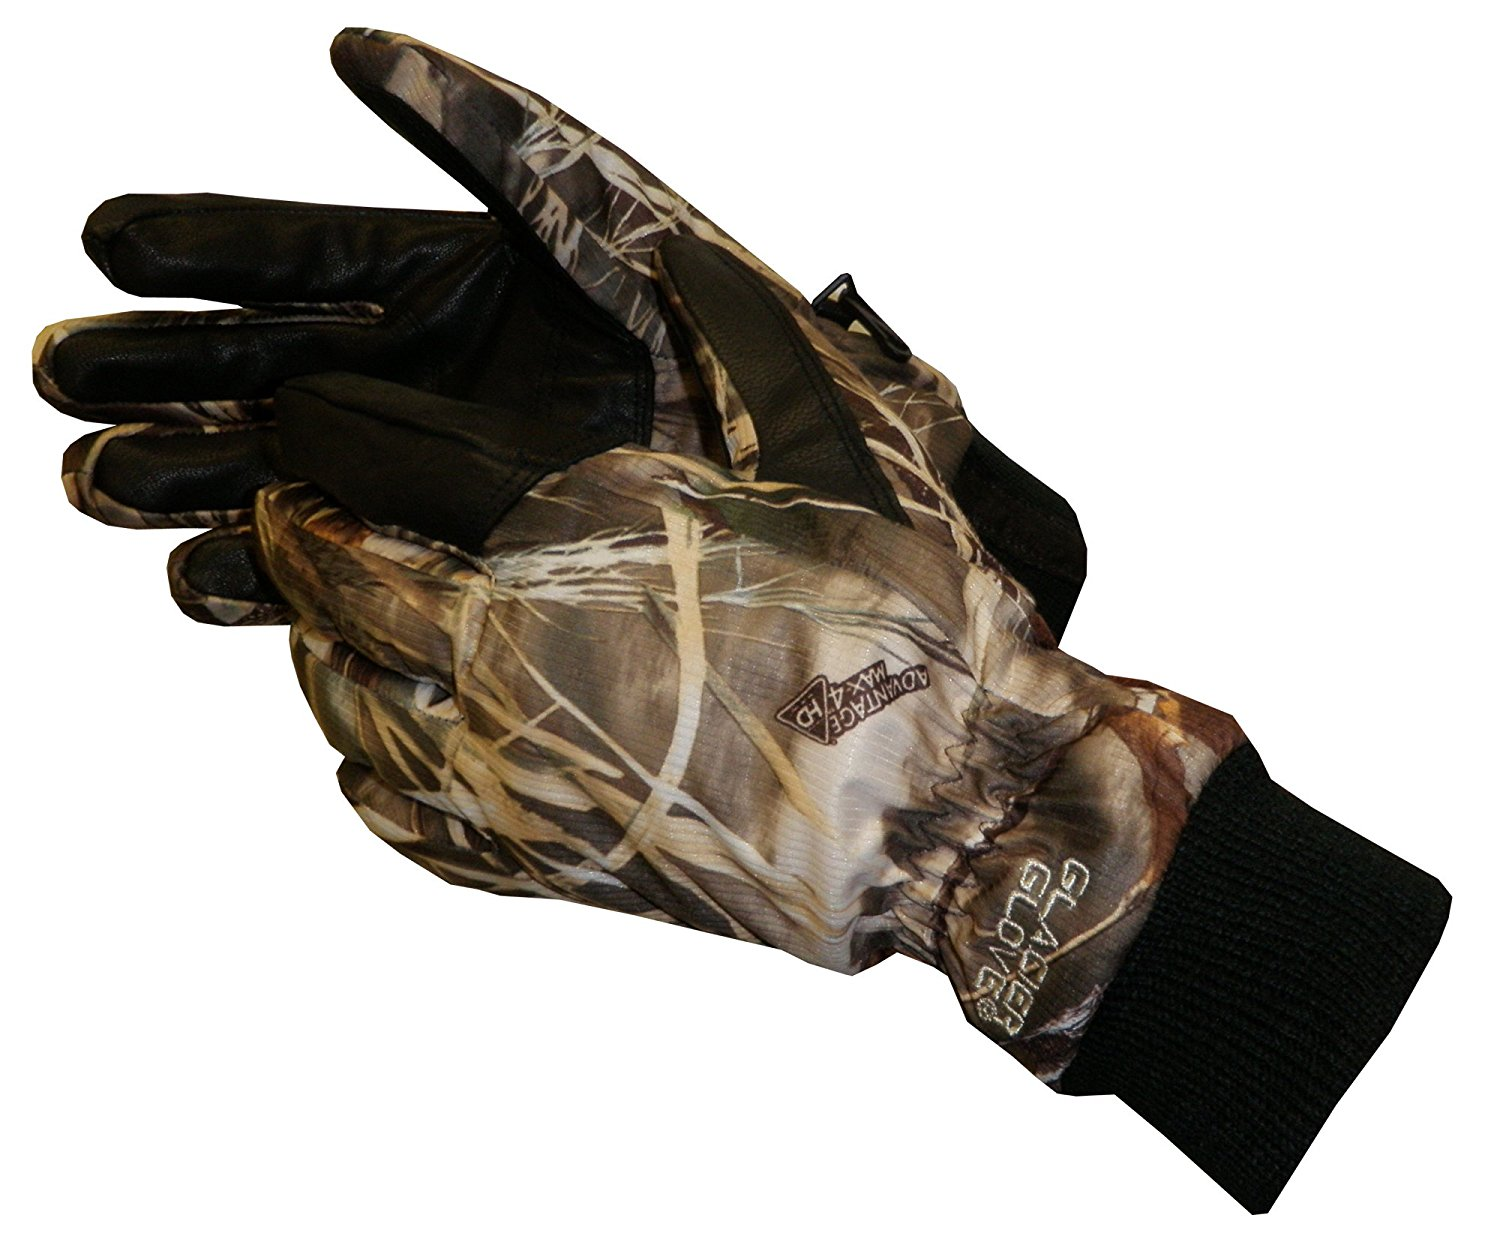 Glacier Glove Alaska River Flip-Mitt Fishing Glove